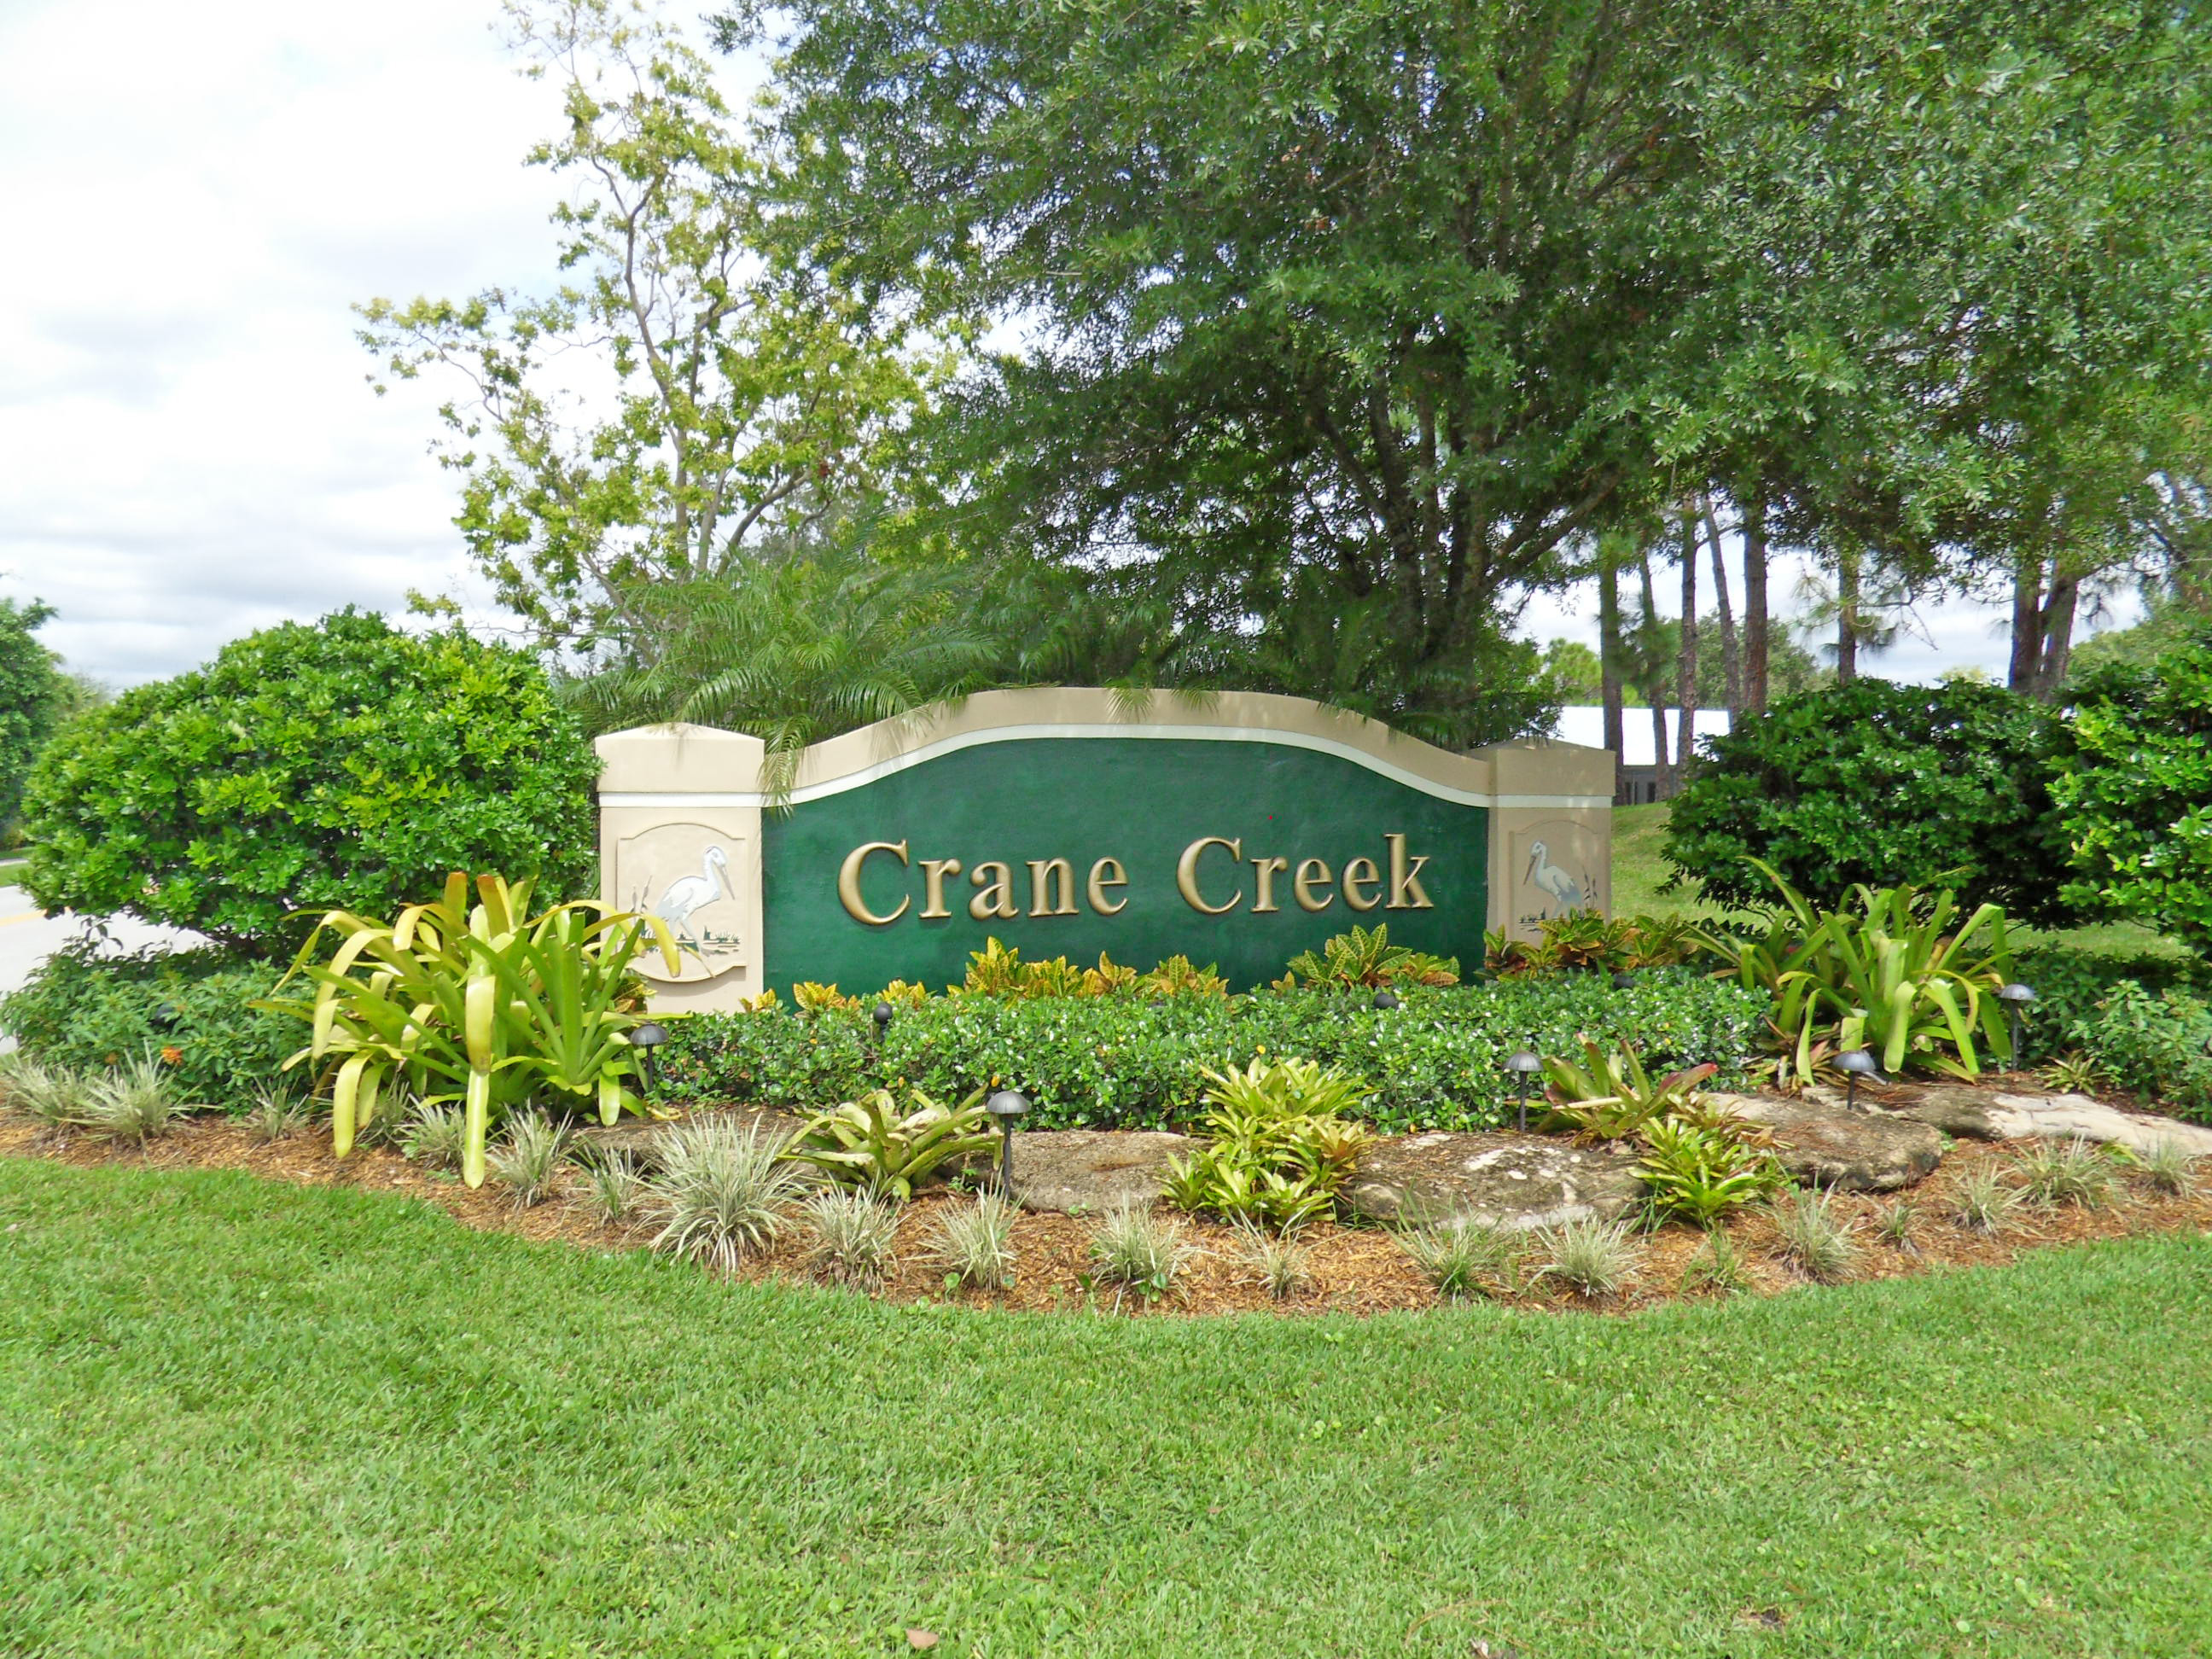 Crane Creek Country Club